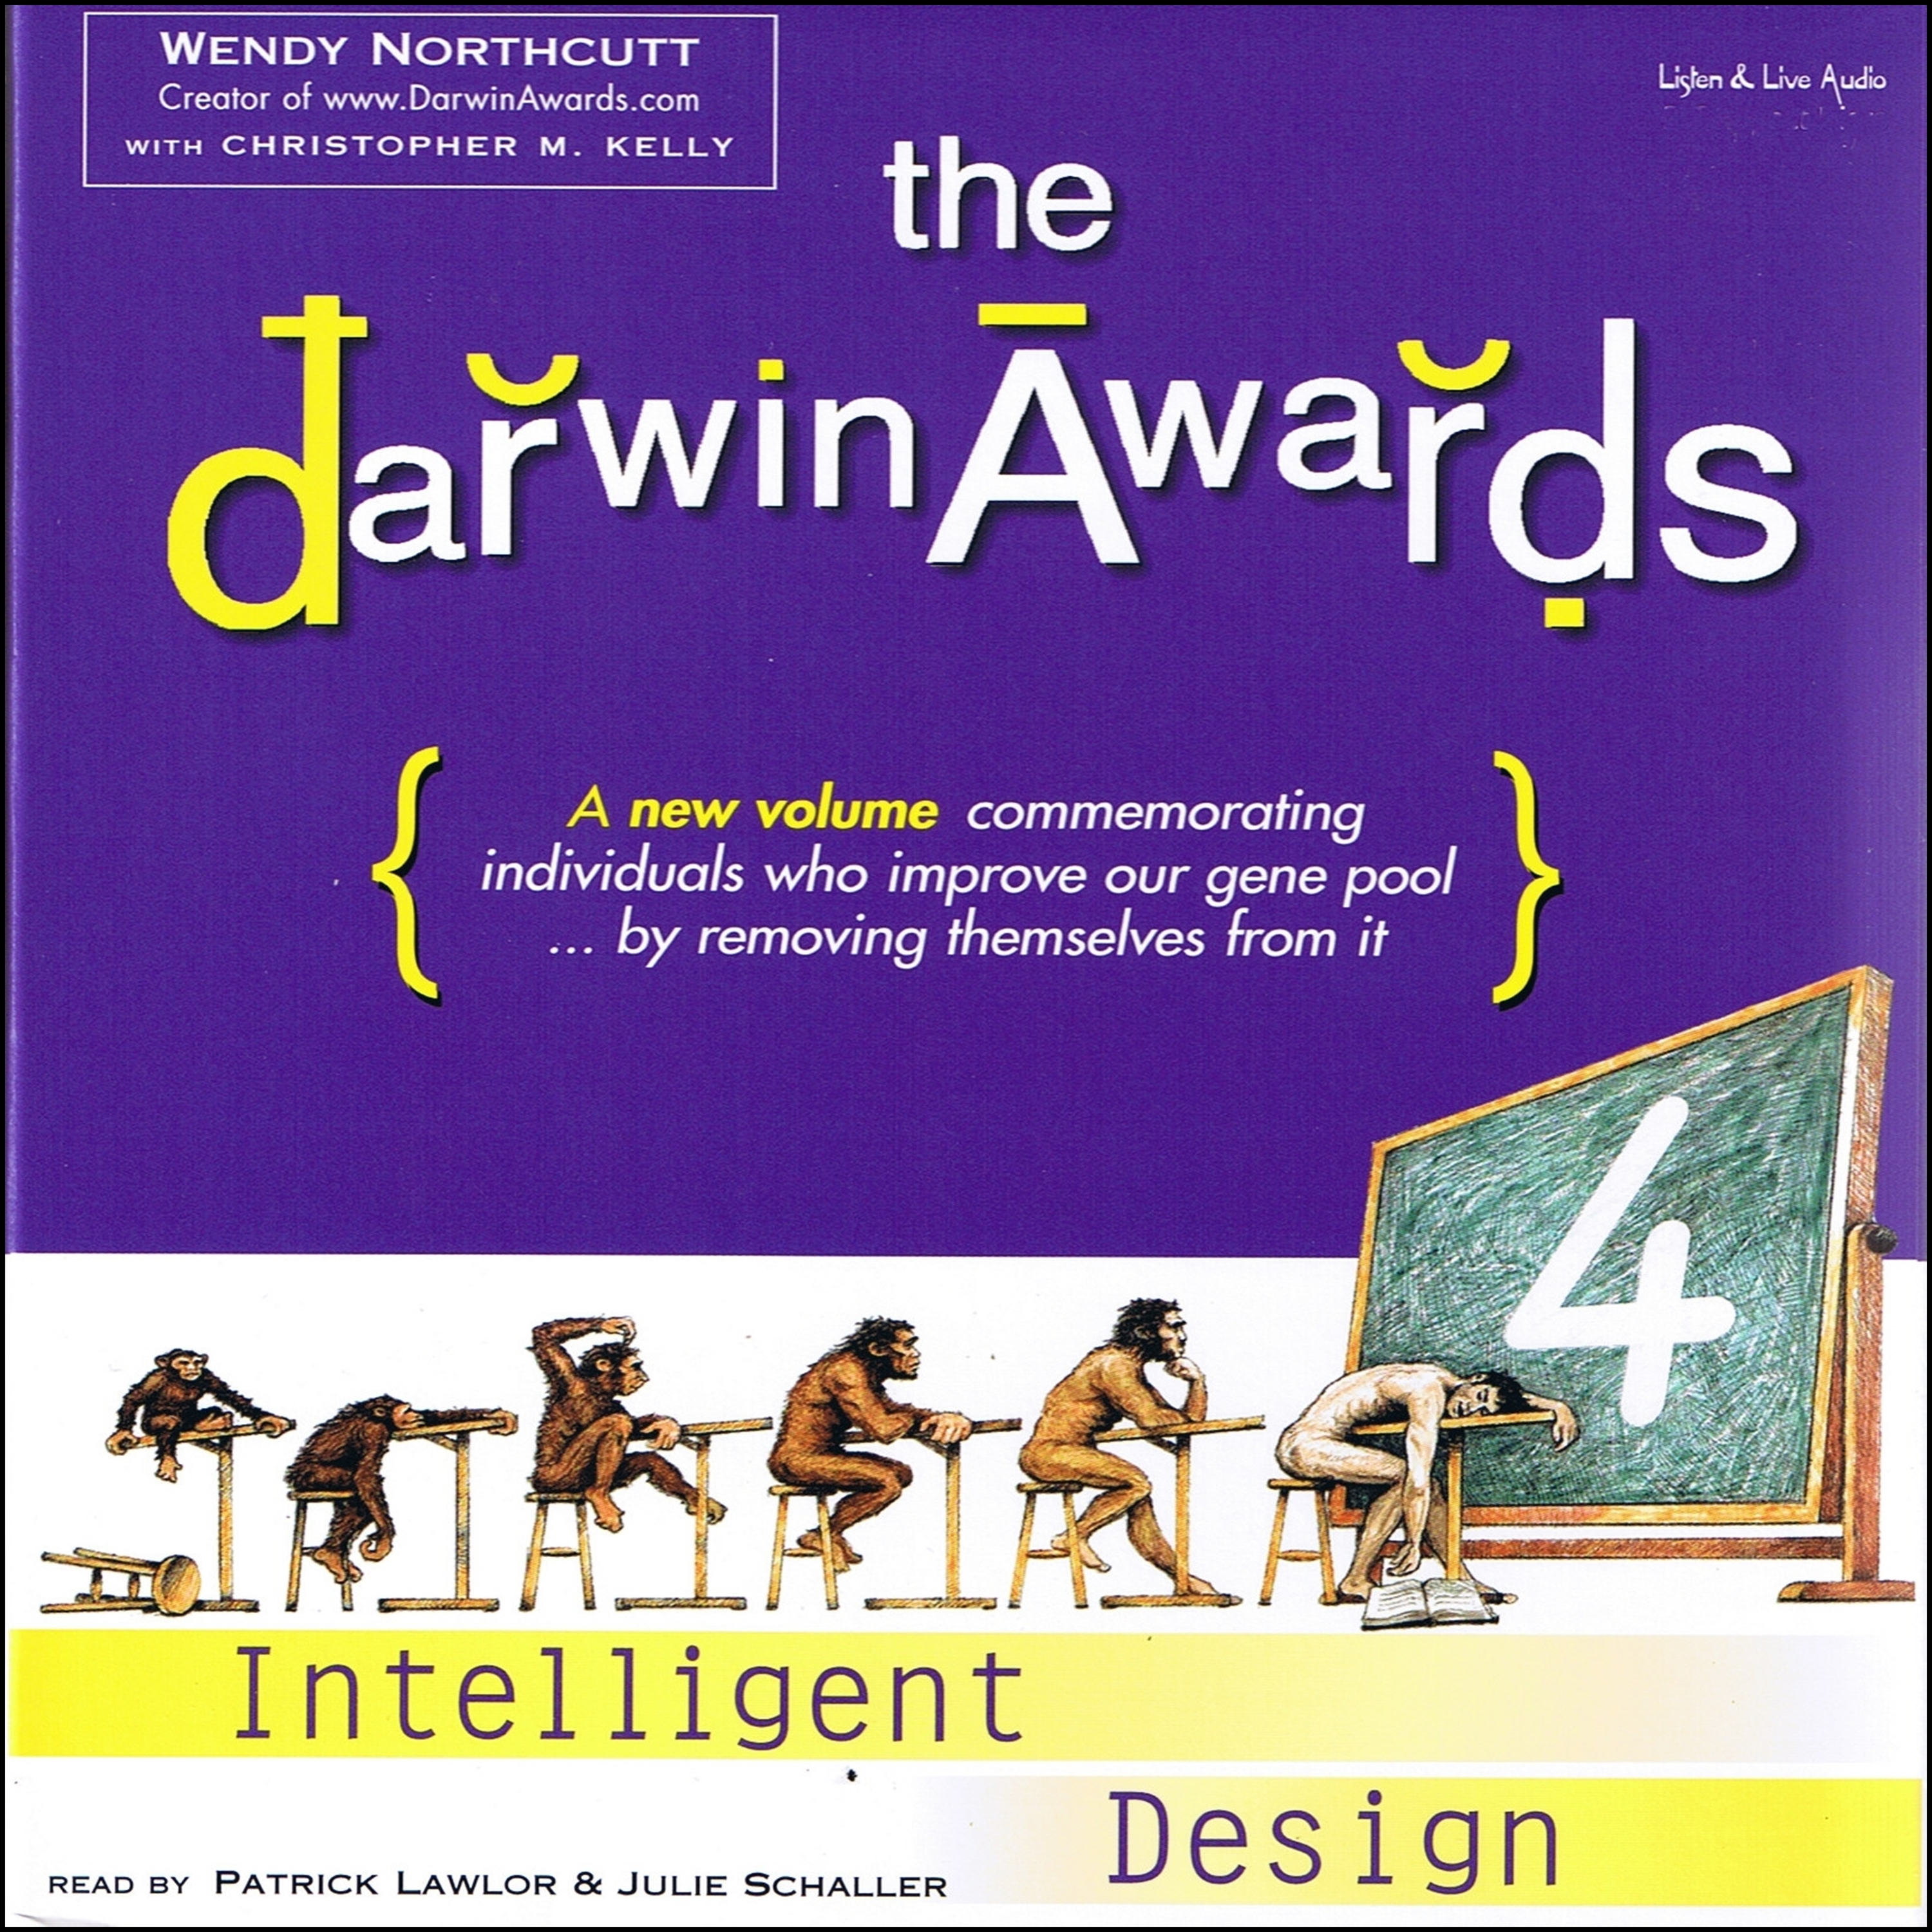 The Darwin Awards 4: Intelligent Design [DD]